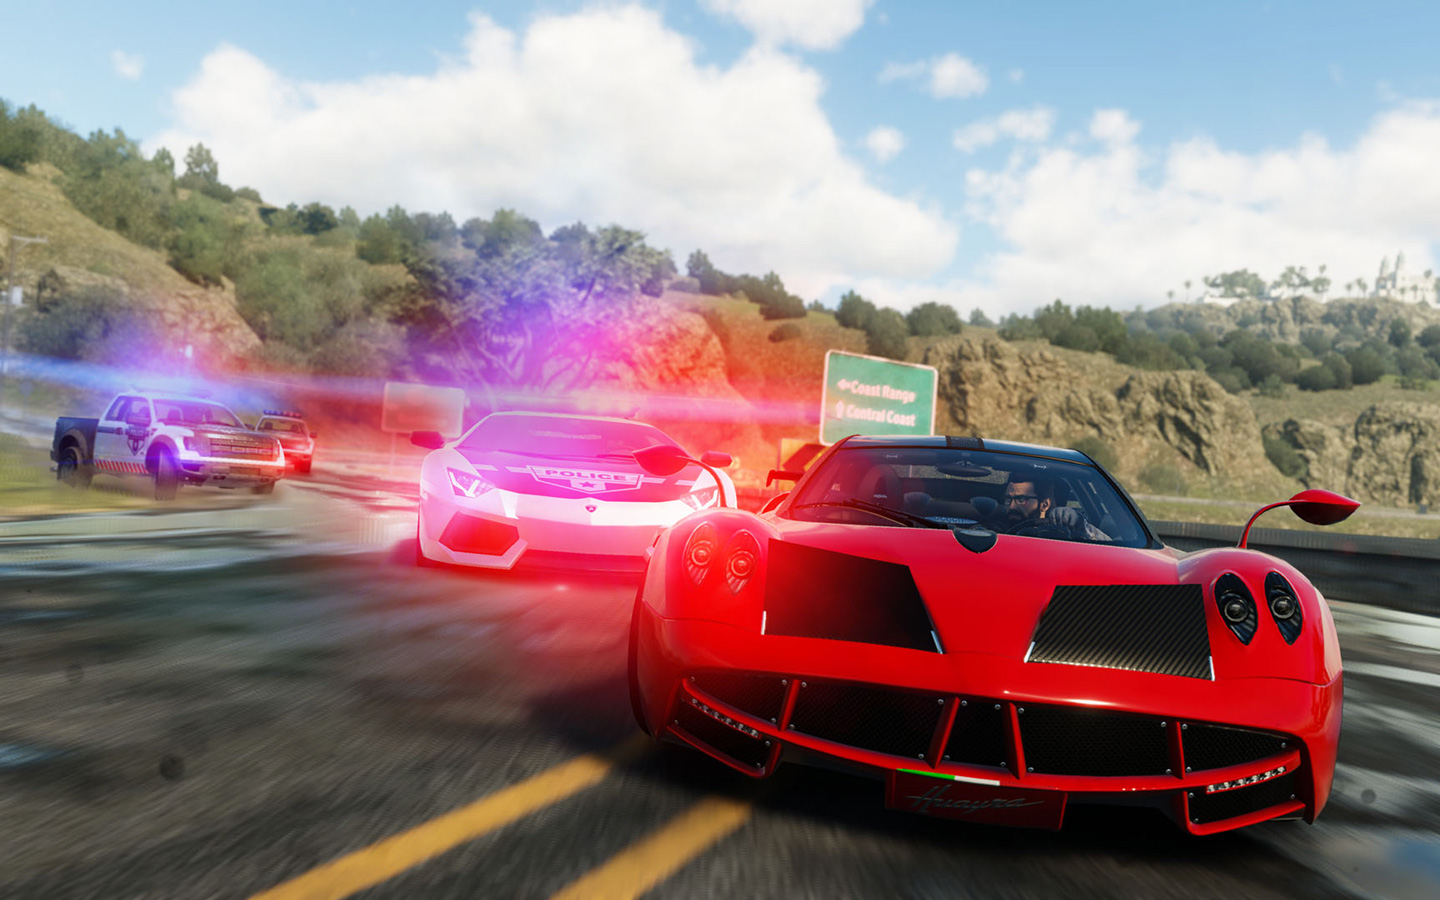 Free The Crew Wallpaper in 1440x900